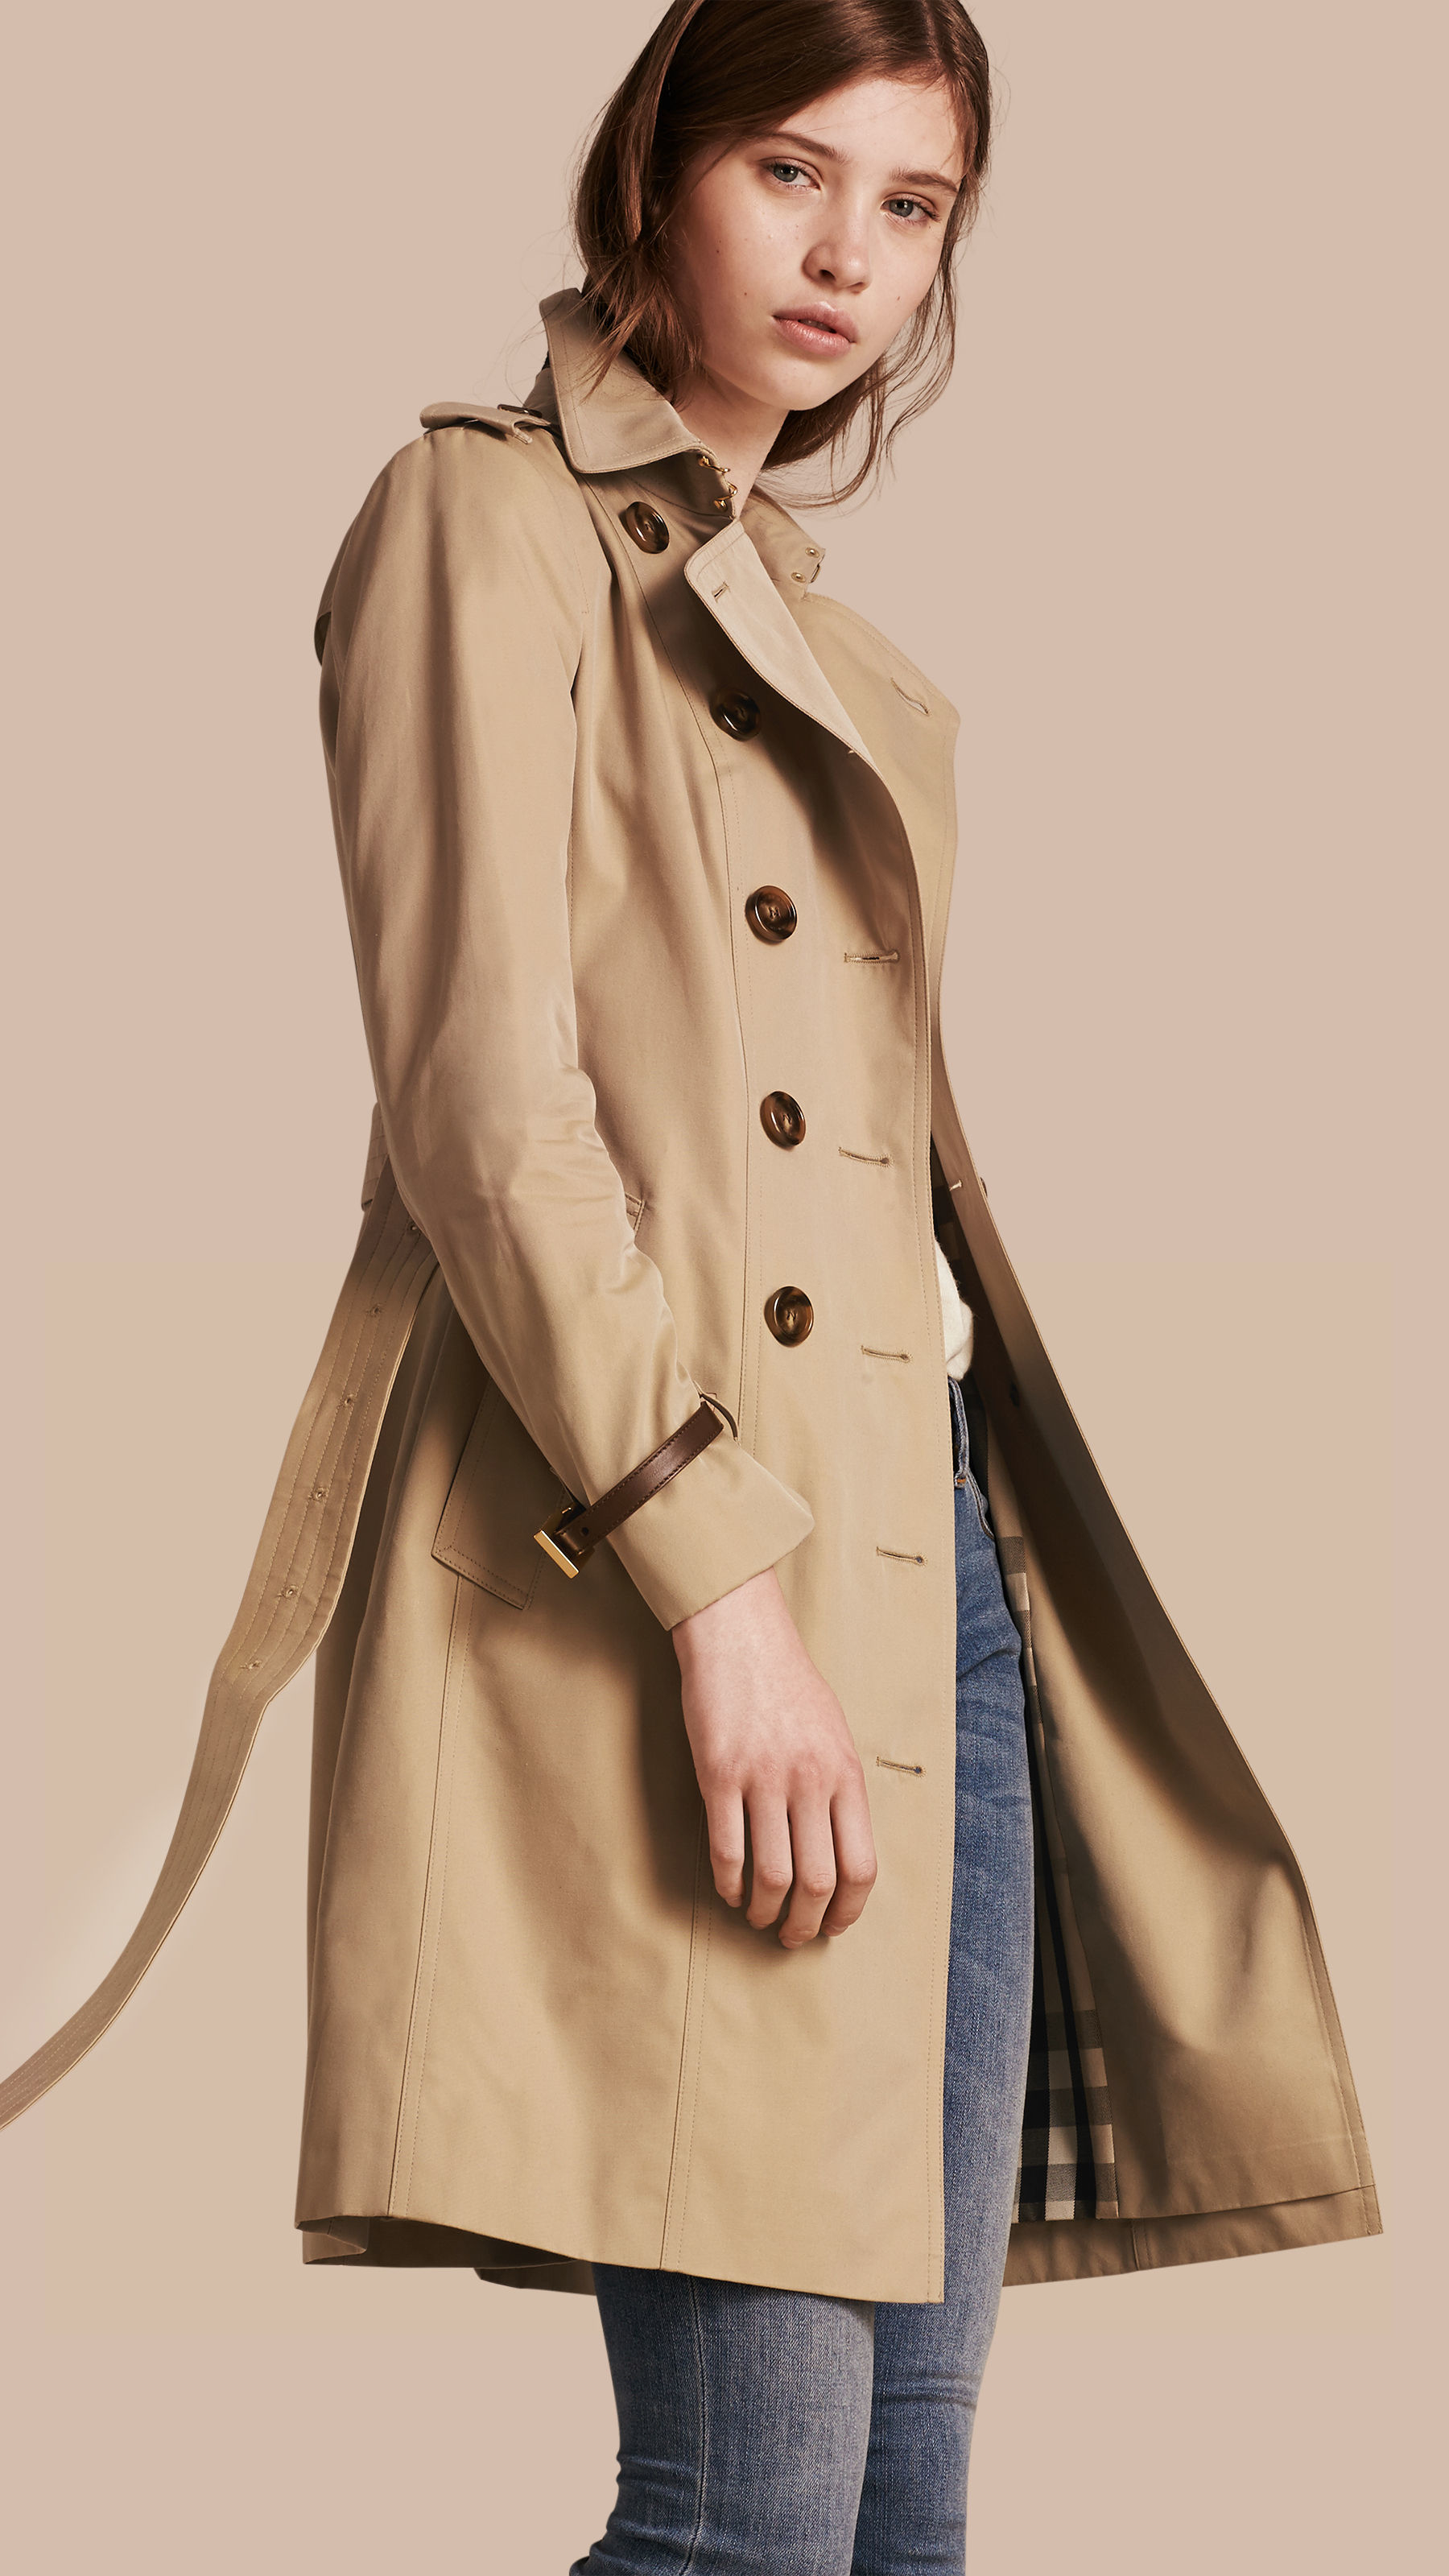 804e7a80cca50c Burberry Leather Trim Cotton Gabardine Trench Coat in Brown - Lyst